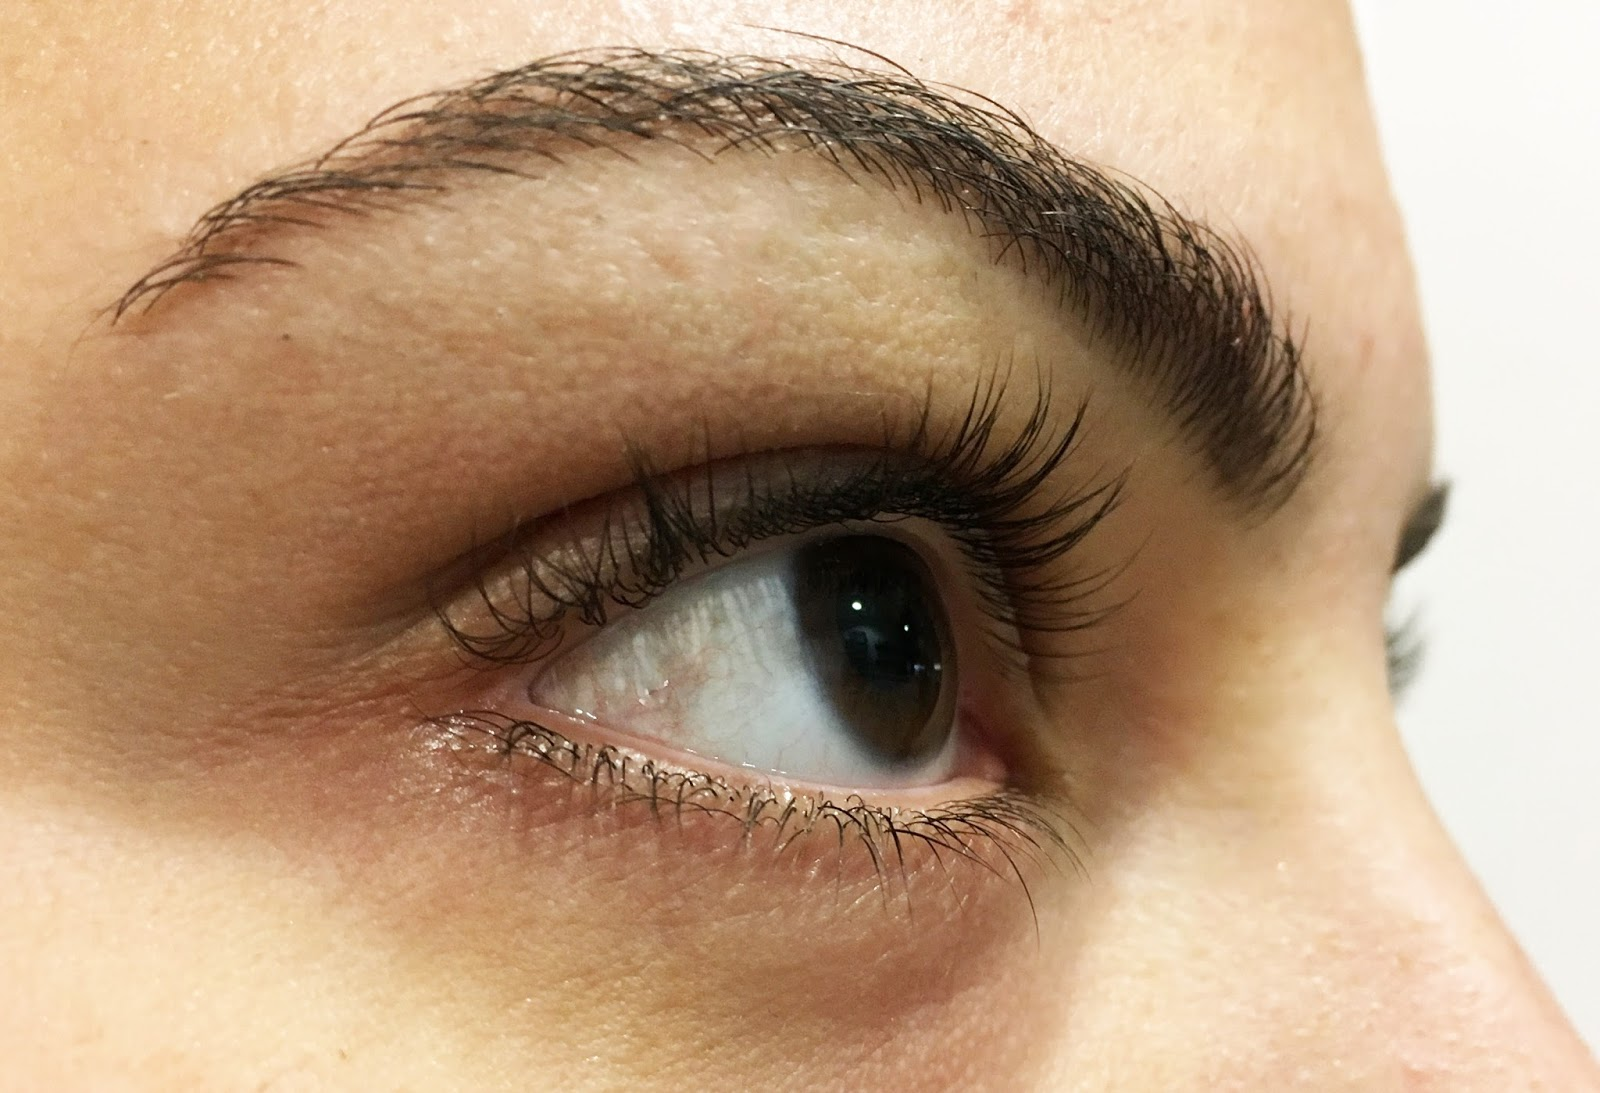 d81b5e0259c LVL is a natural solution to add Lift, Volume and Length to your natural  lashes to make them look fuller, thicker and longer.